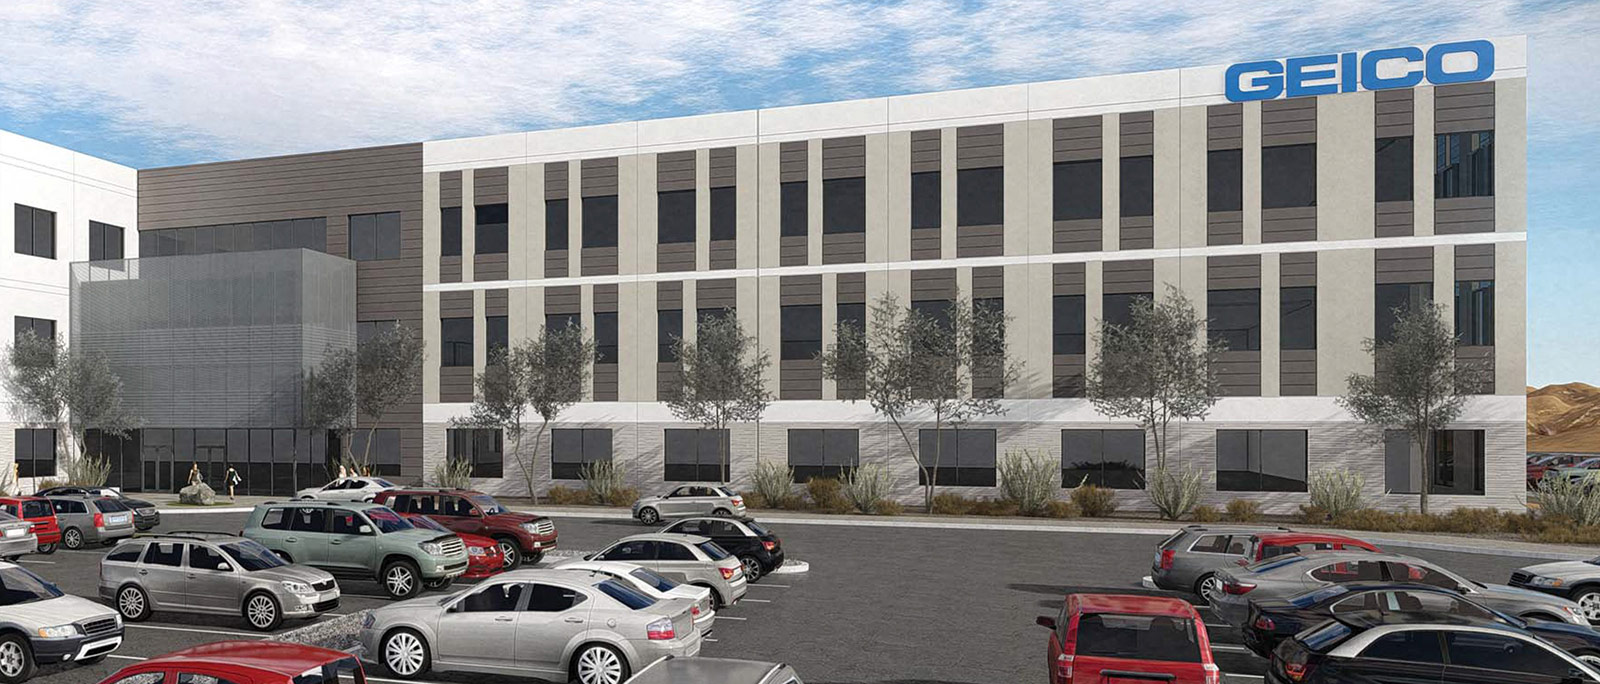 Rendering of GEICO's new Tucson regional office (Bourn Companies)